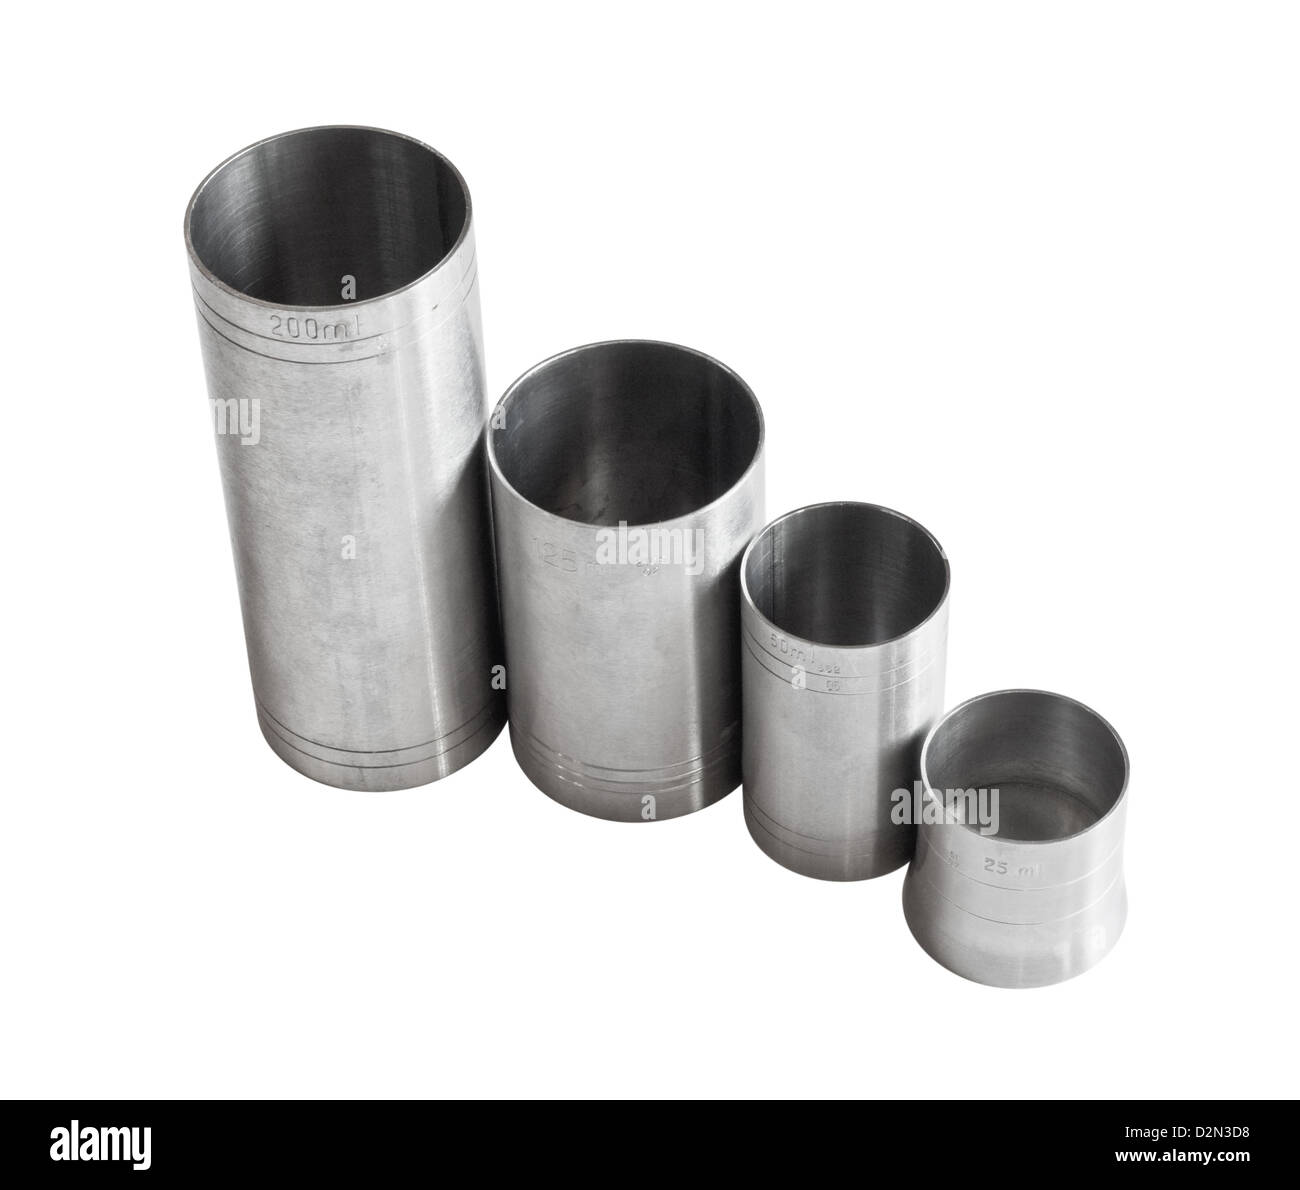 selection of metric thimble measures for serving alcohol in public bars good for graph showing decline in drinks Stock Photo